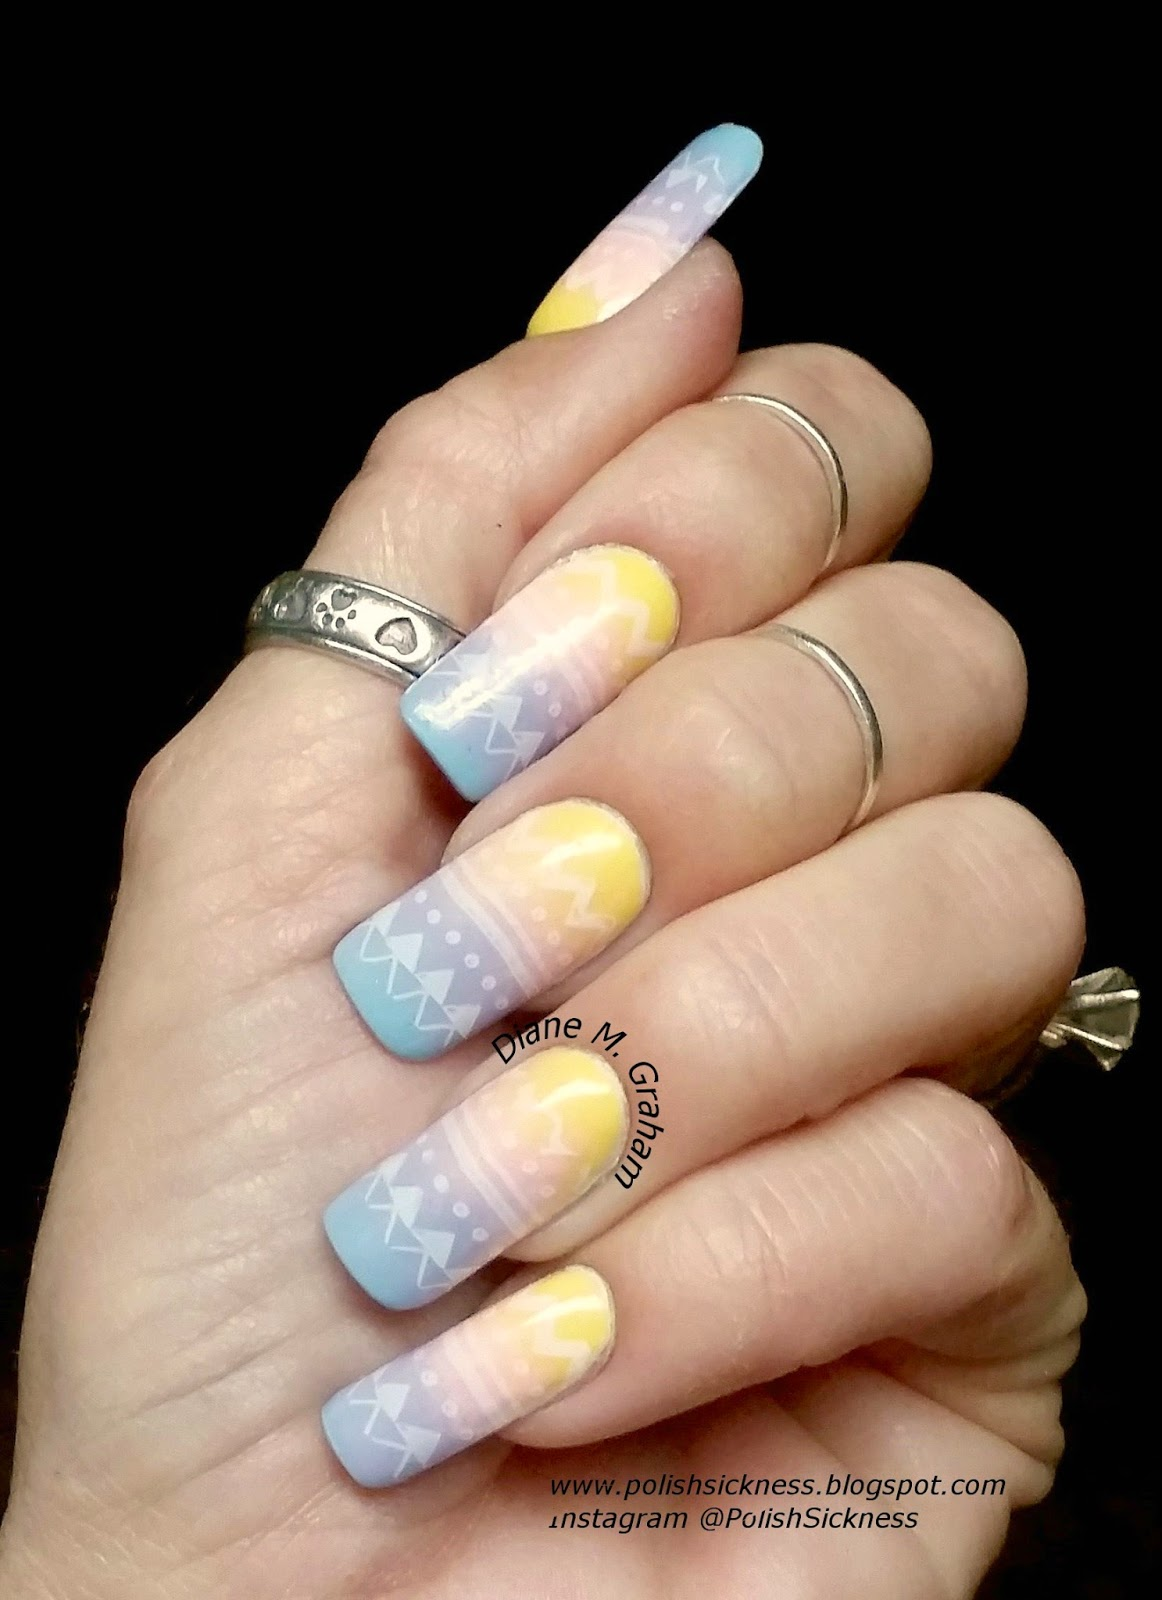 Cult El Porto and The Roxy, Square Hue Yellow Submarine, China Glaze Spring in My Step, Sinful Colors Bright Lucite gradient, MoYou Pro XL03 Easter stamp